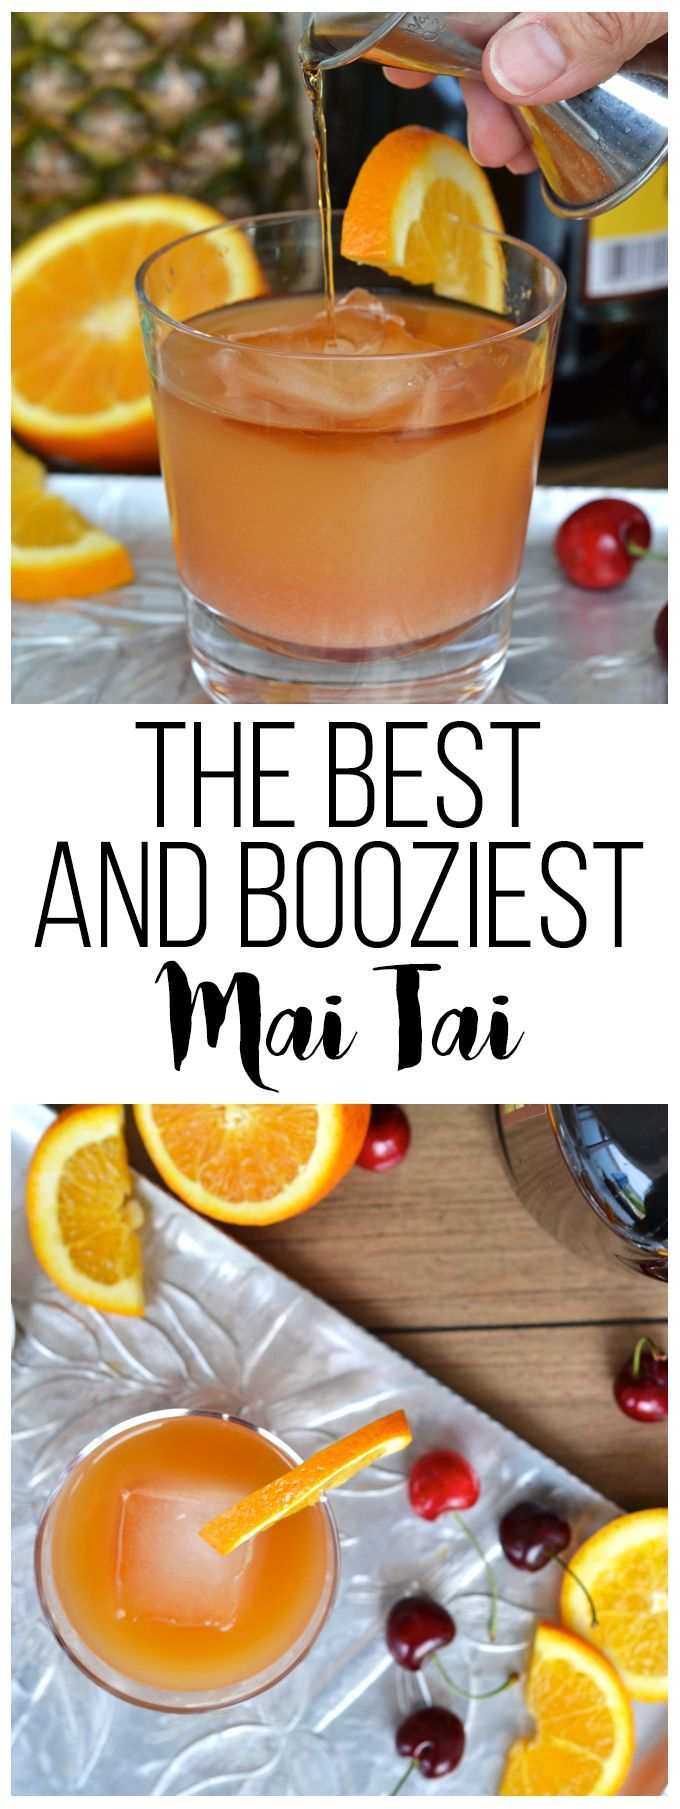 17 best images about healthy ish alcoholic drinks on for Best mix drink ever